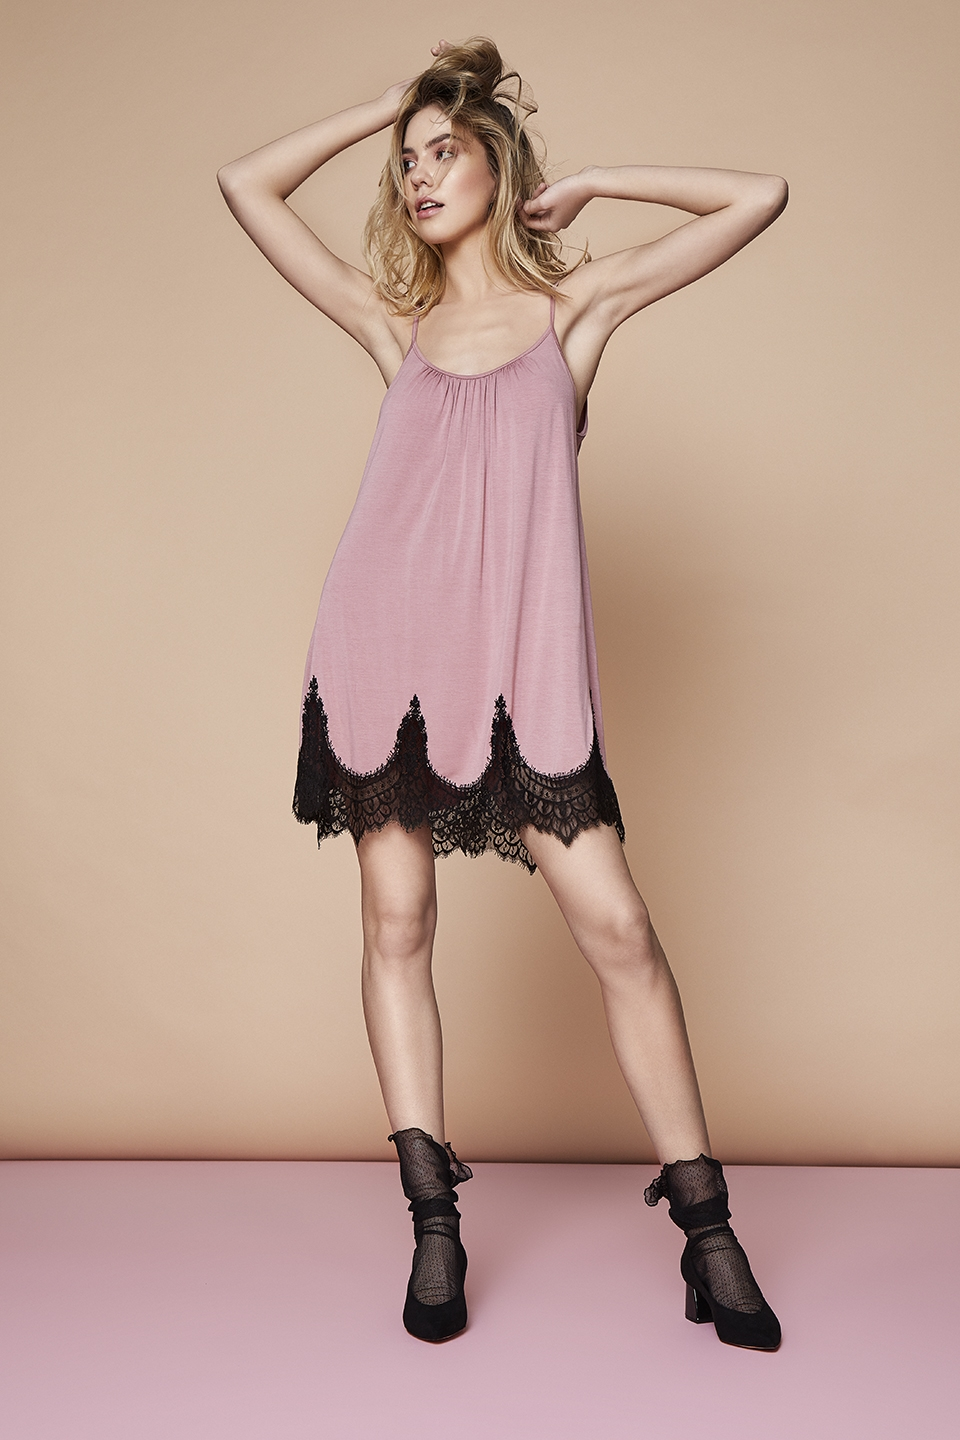 Silent Night OZ135 Chemise<br />03 Dark Blue, 15 Beige, 67 Antique Rose<br />Freckled OZ149 Calzini